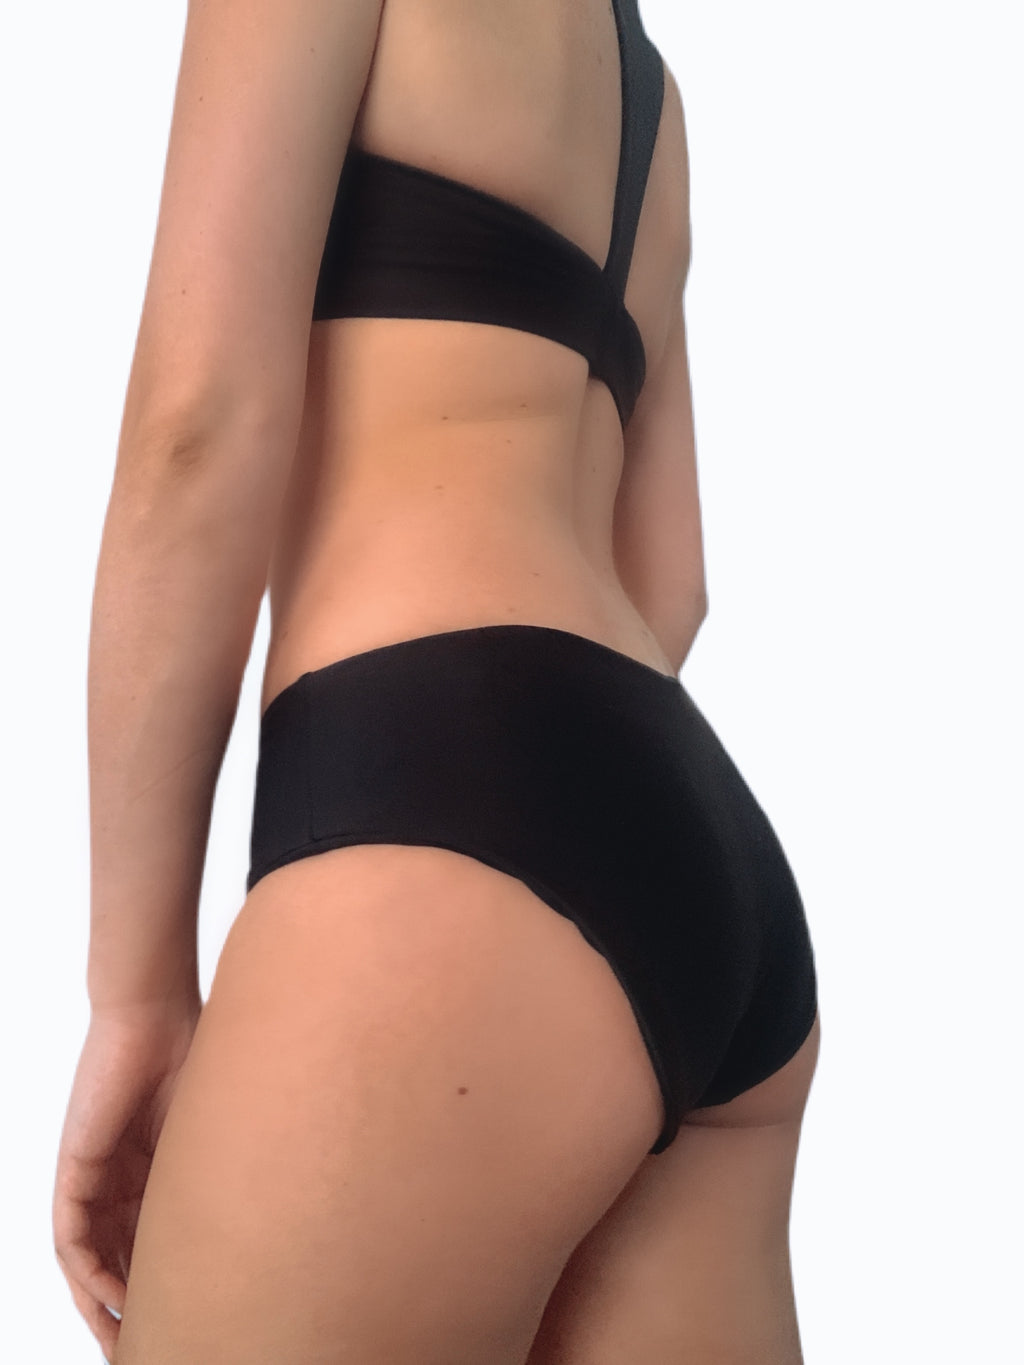 Everly Bottom - Black (Cheeky or Full Coverage)